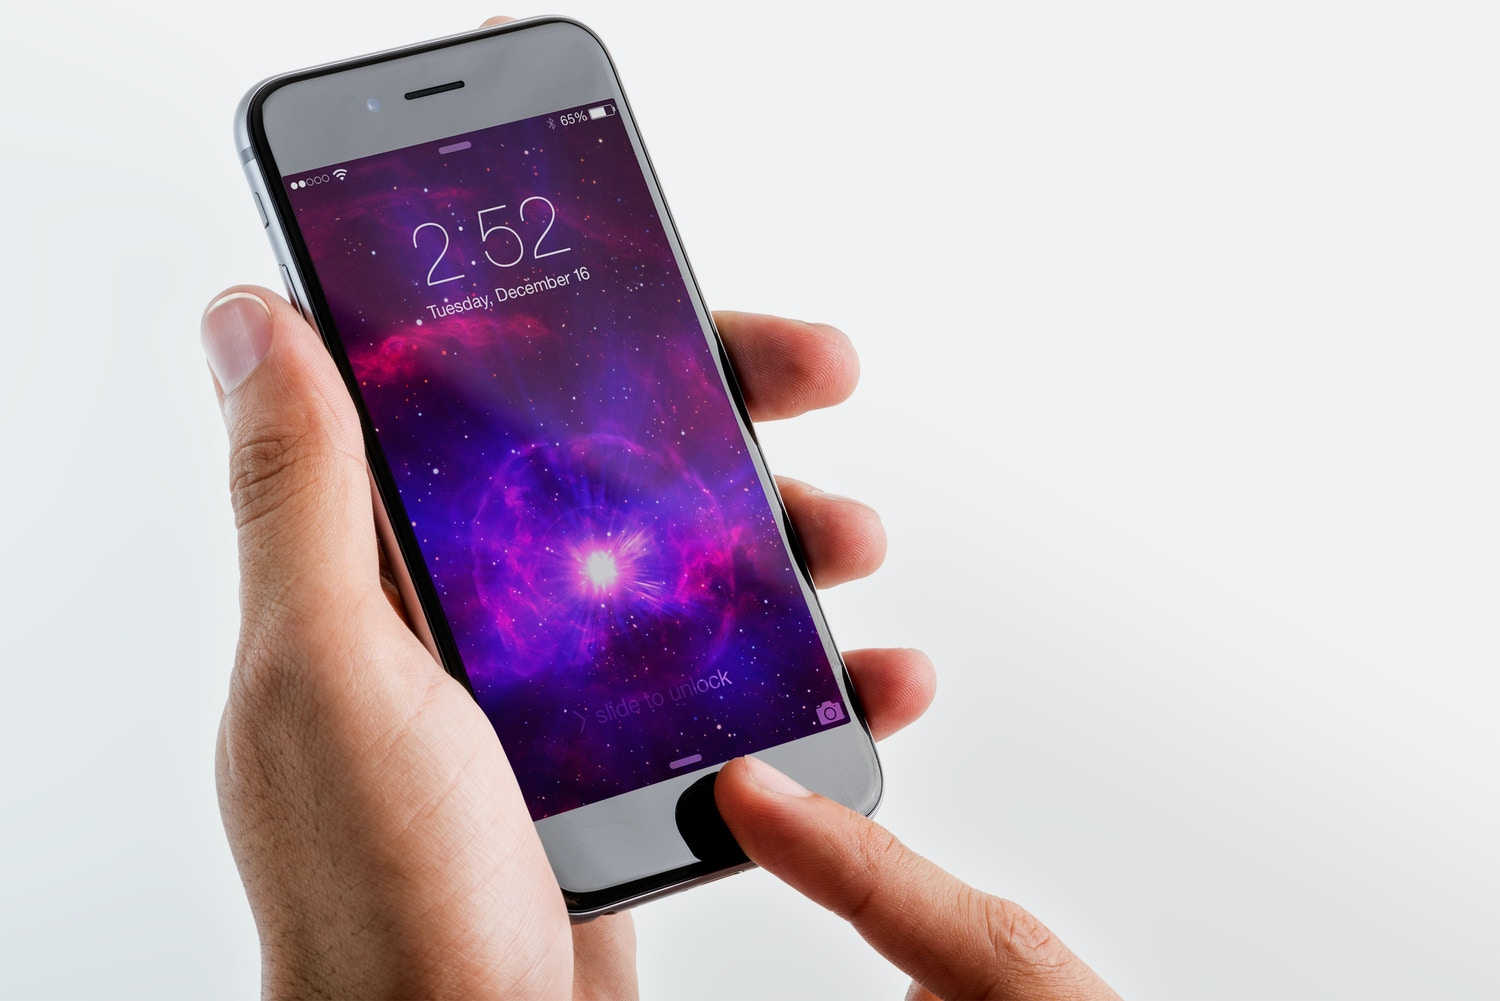 Iphone 6 Spacegray PSD Mockup 03 by Original Mockups on Original Mockups